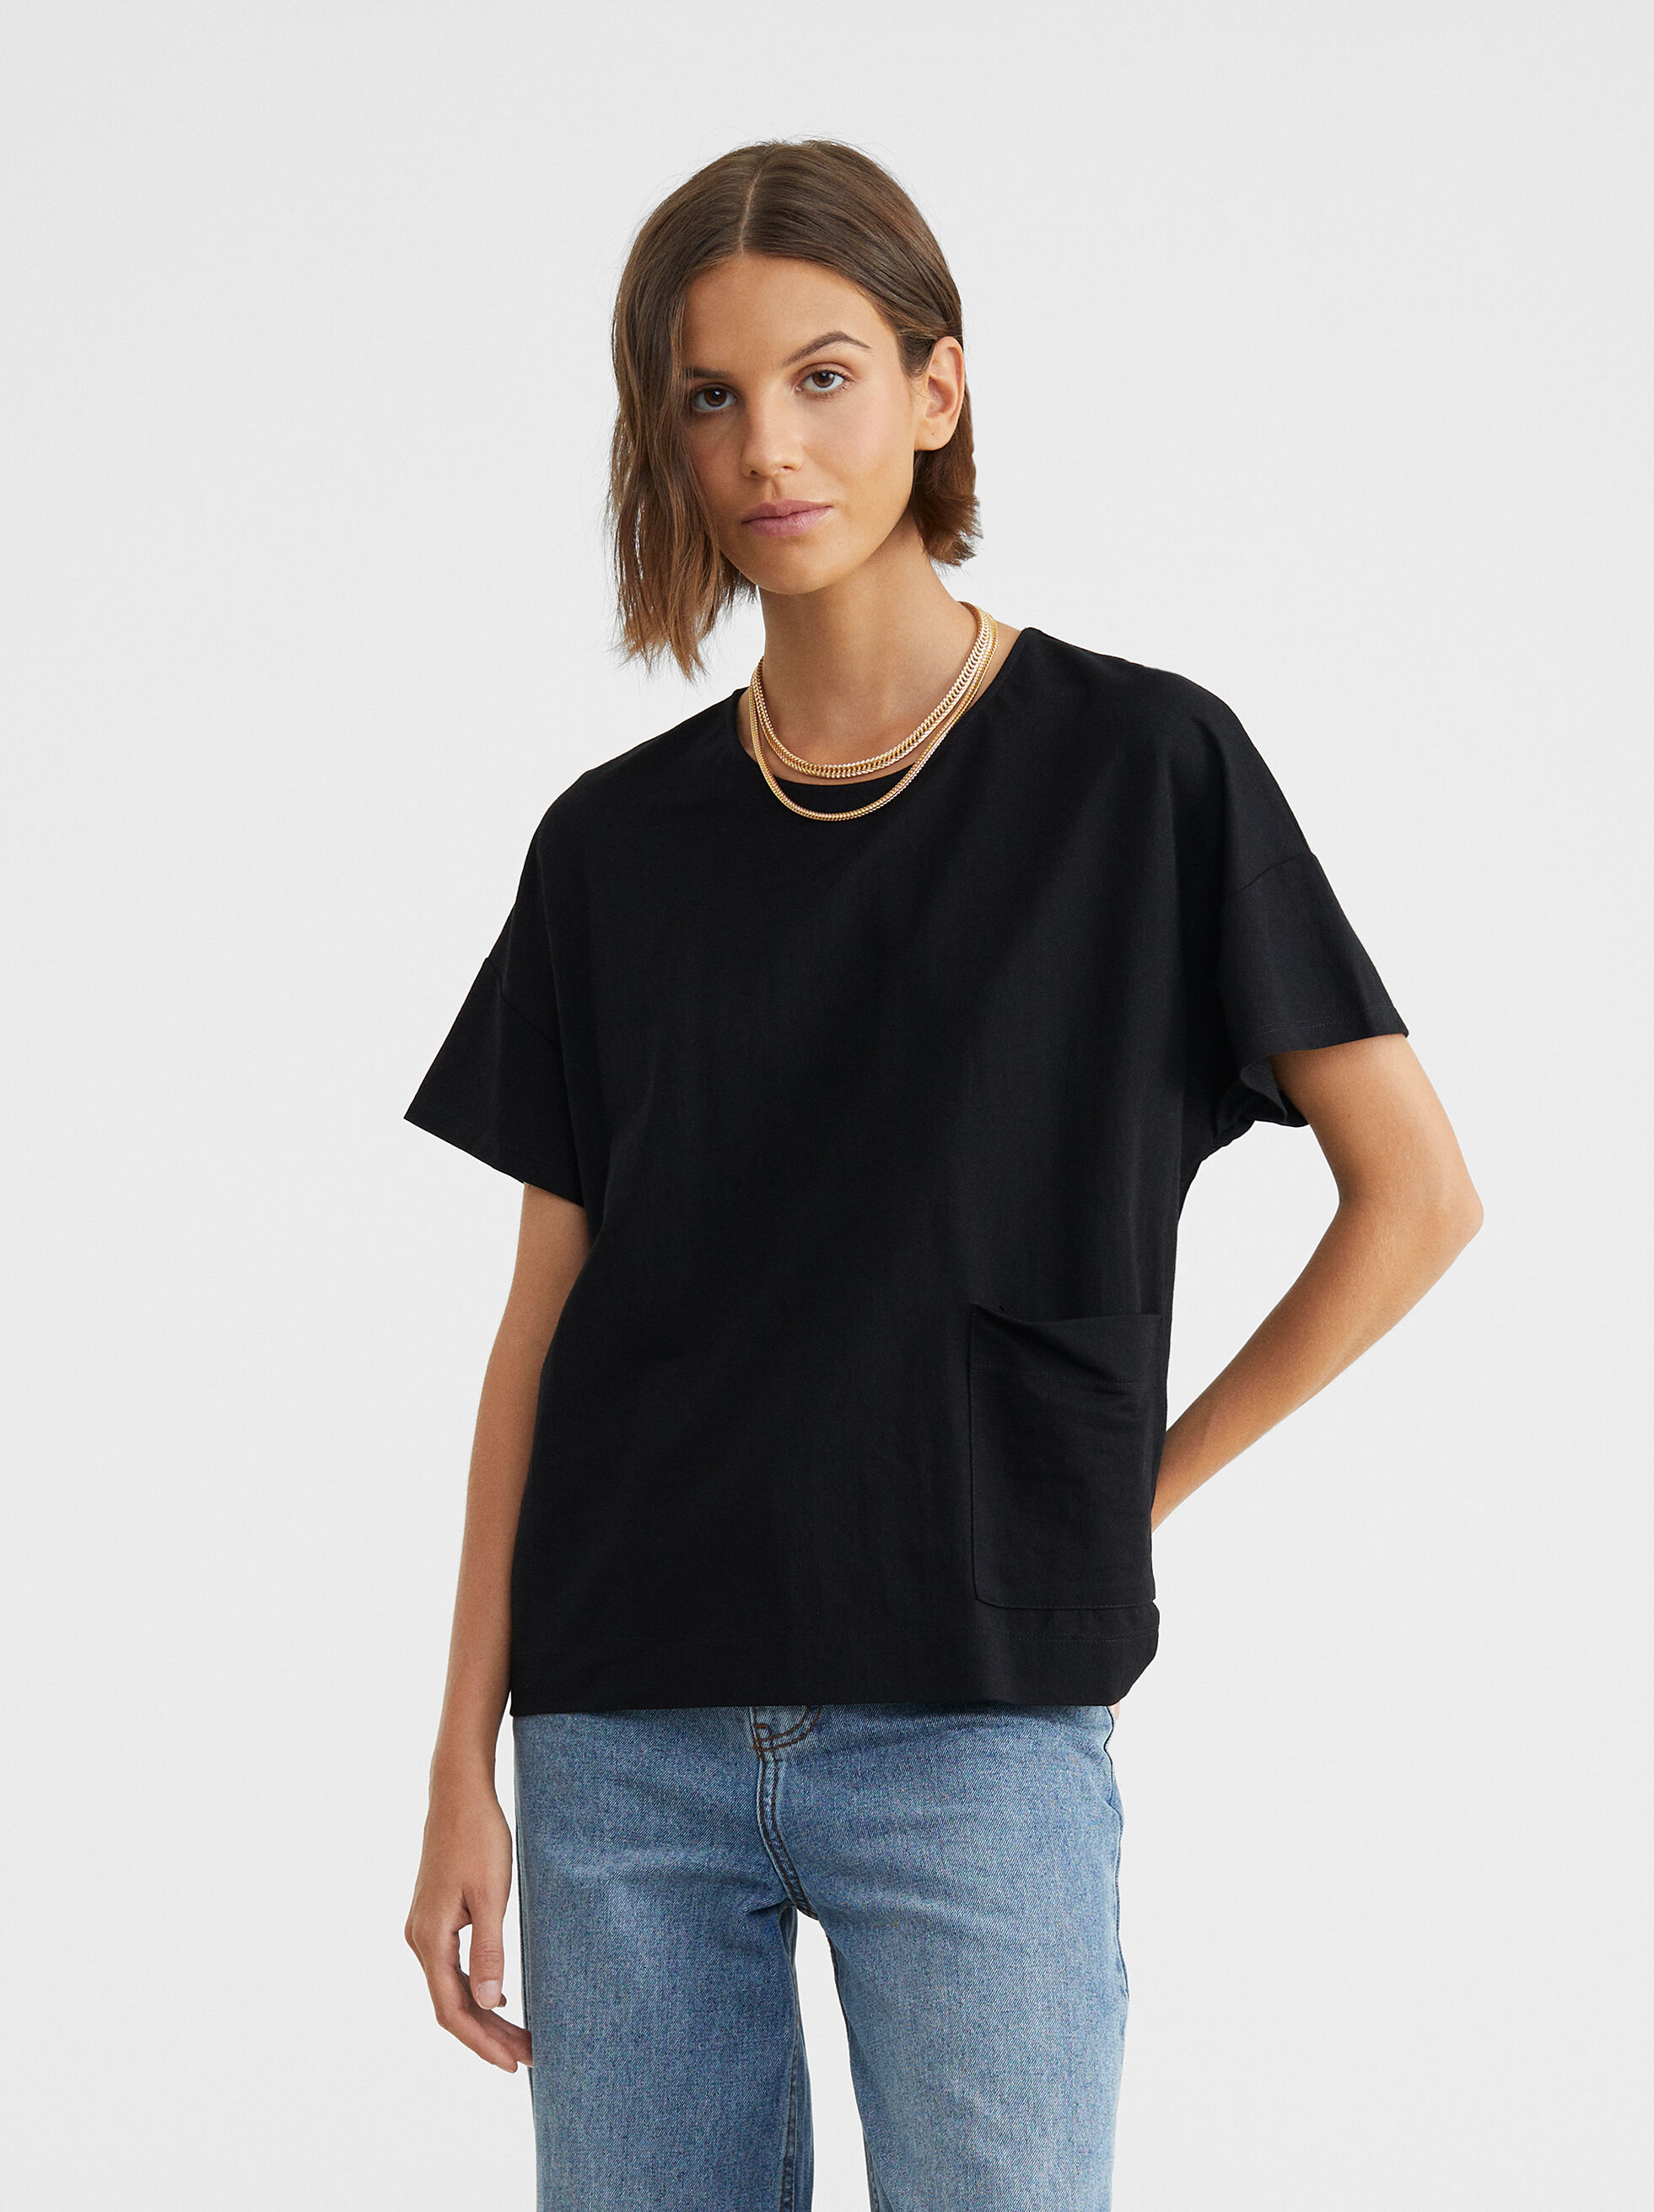 Basic Round-Neck T-Shirt, Black, hi-res